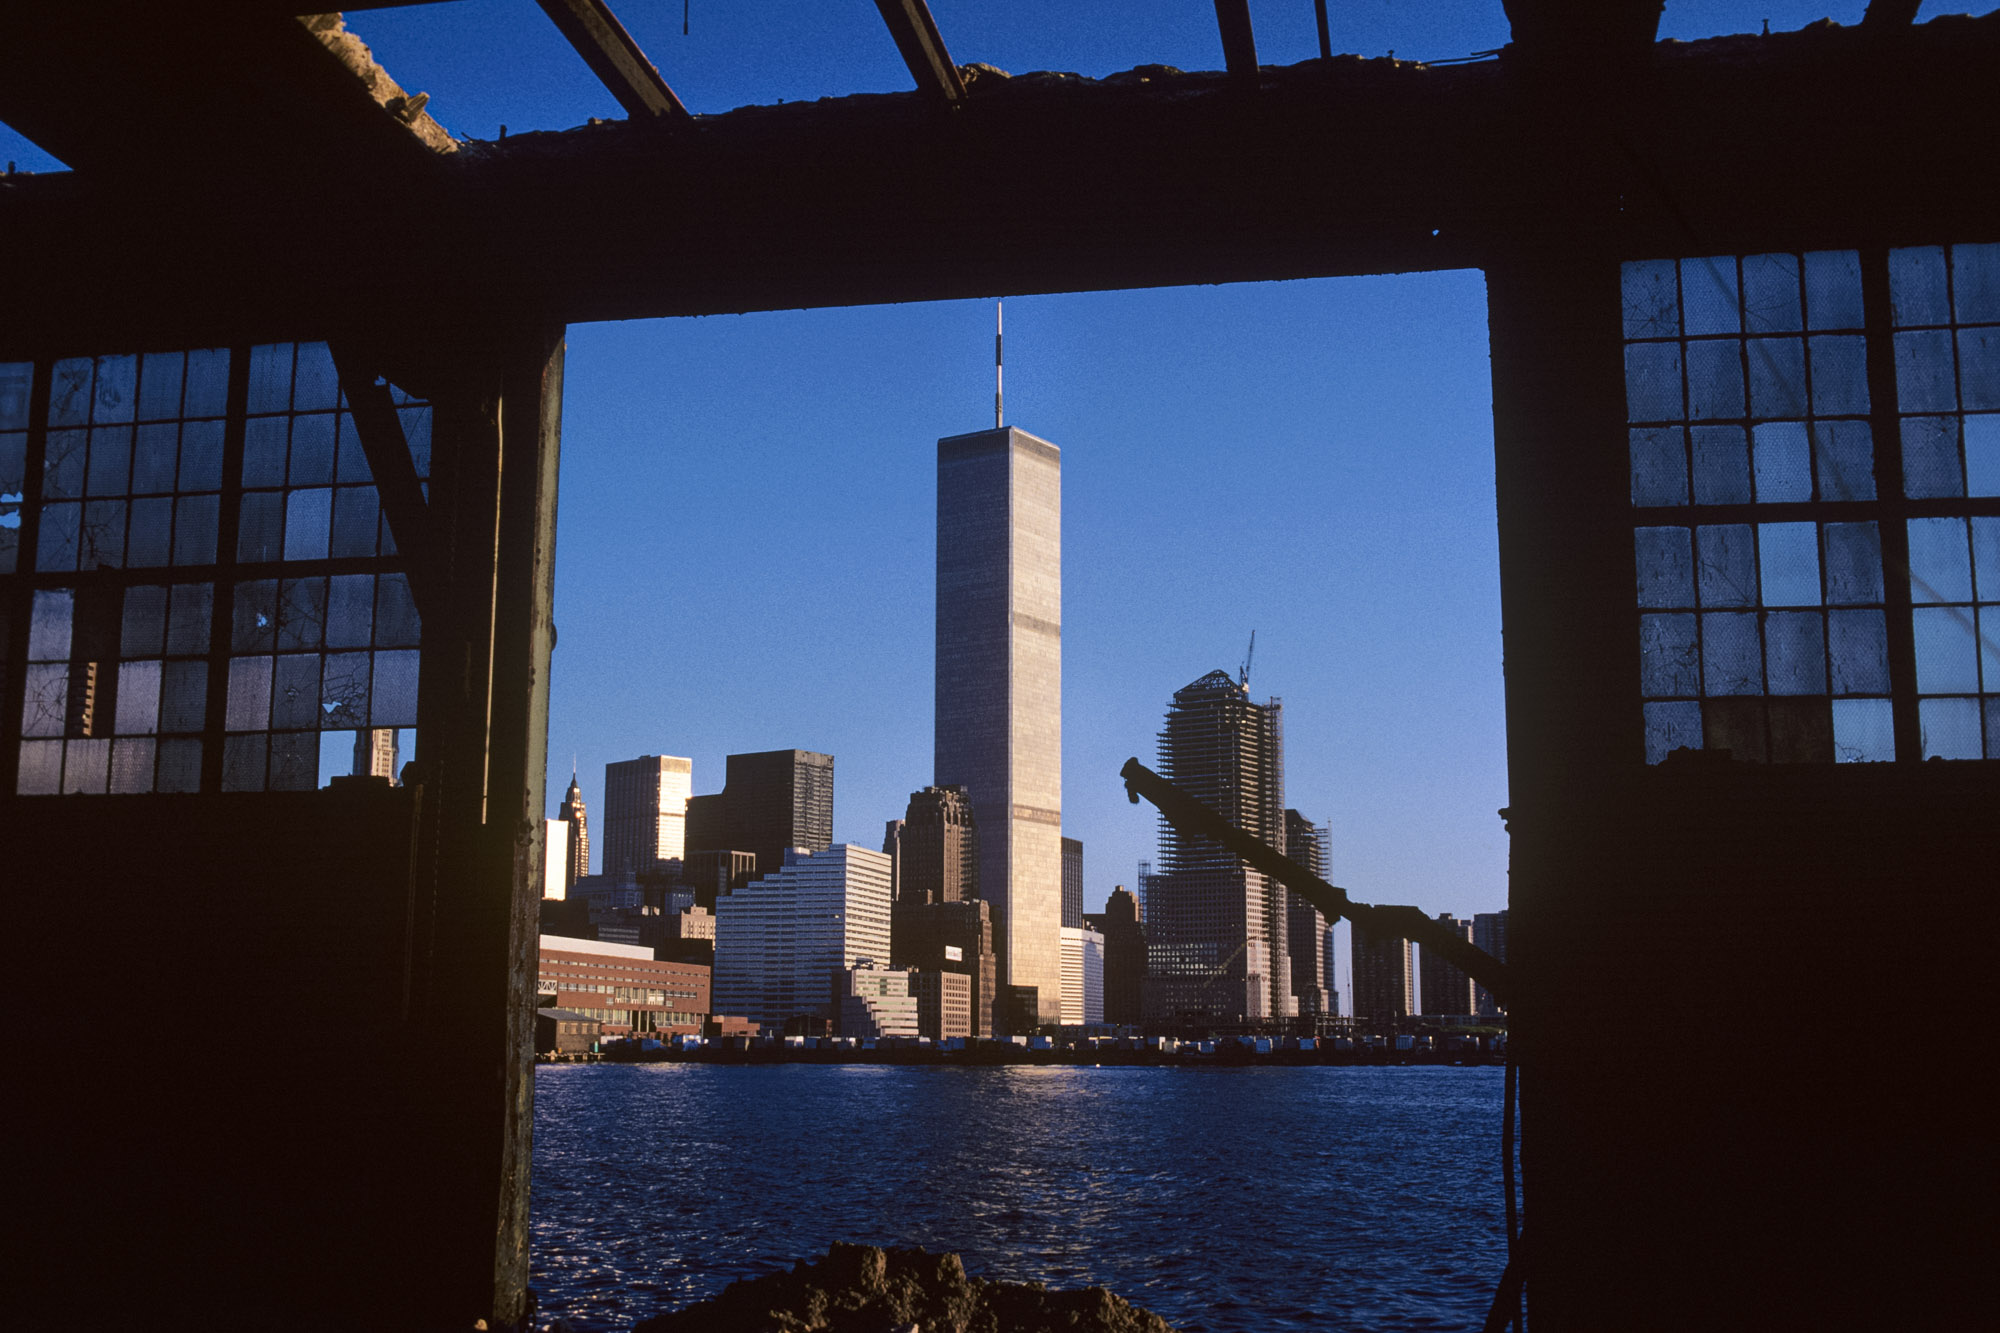 the old World Trade Center in New York City